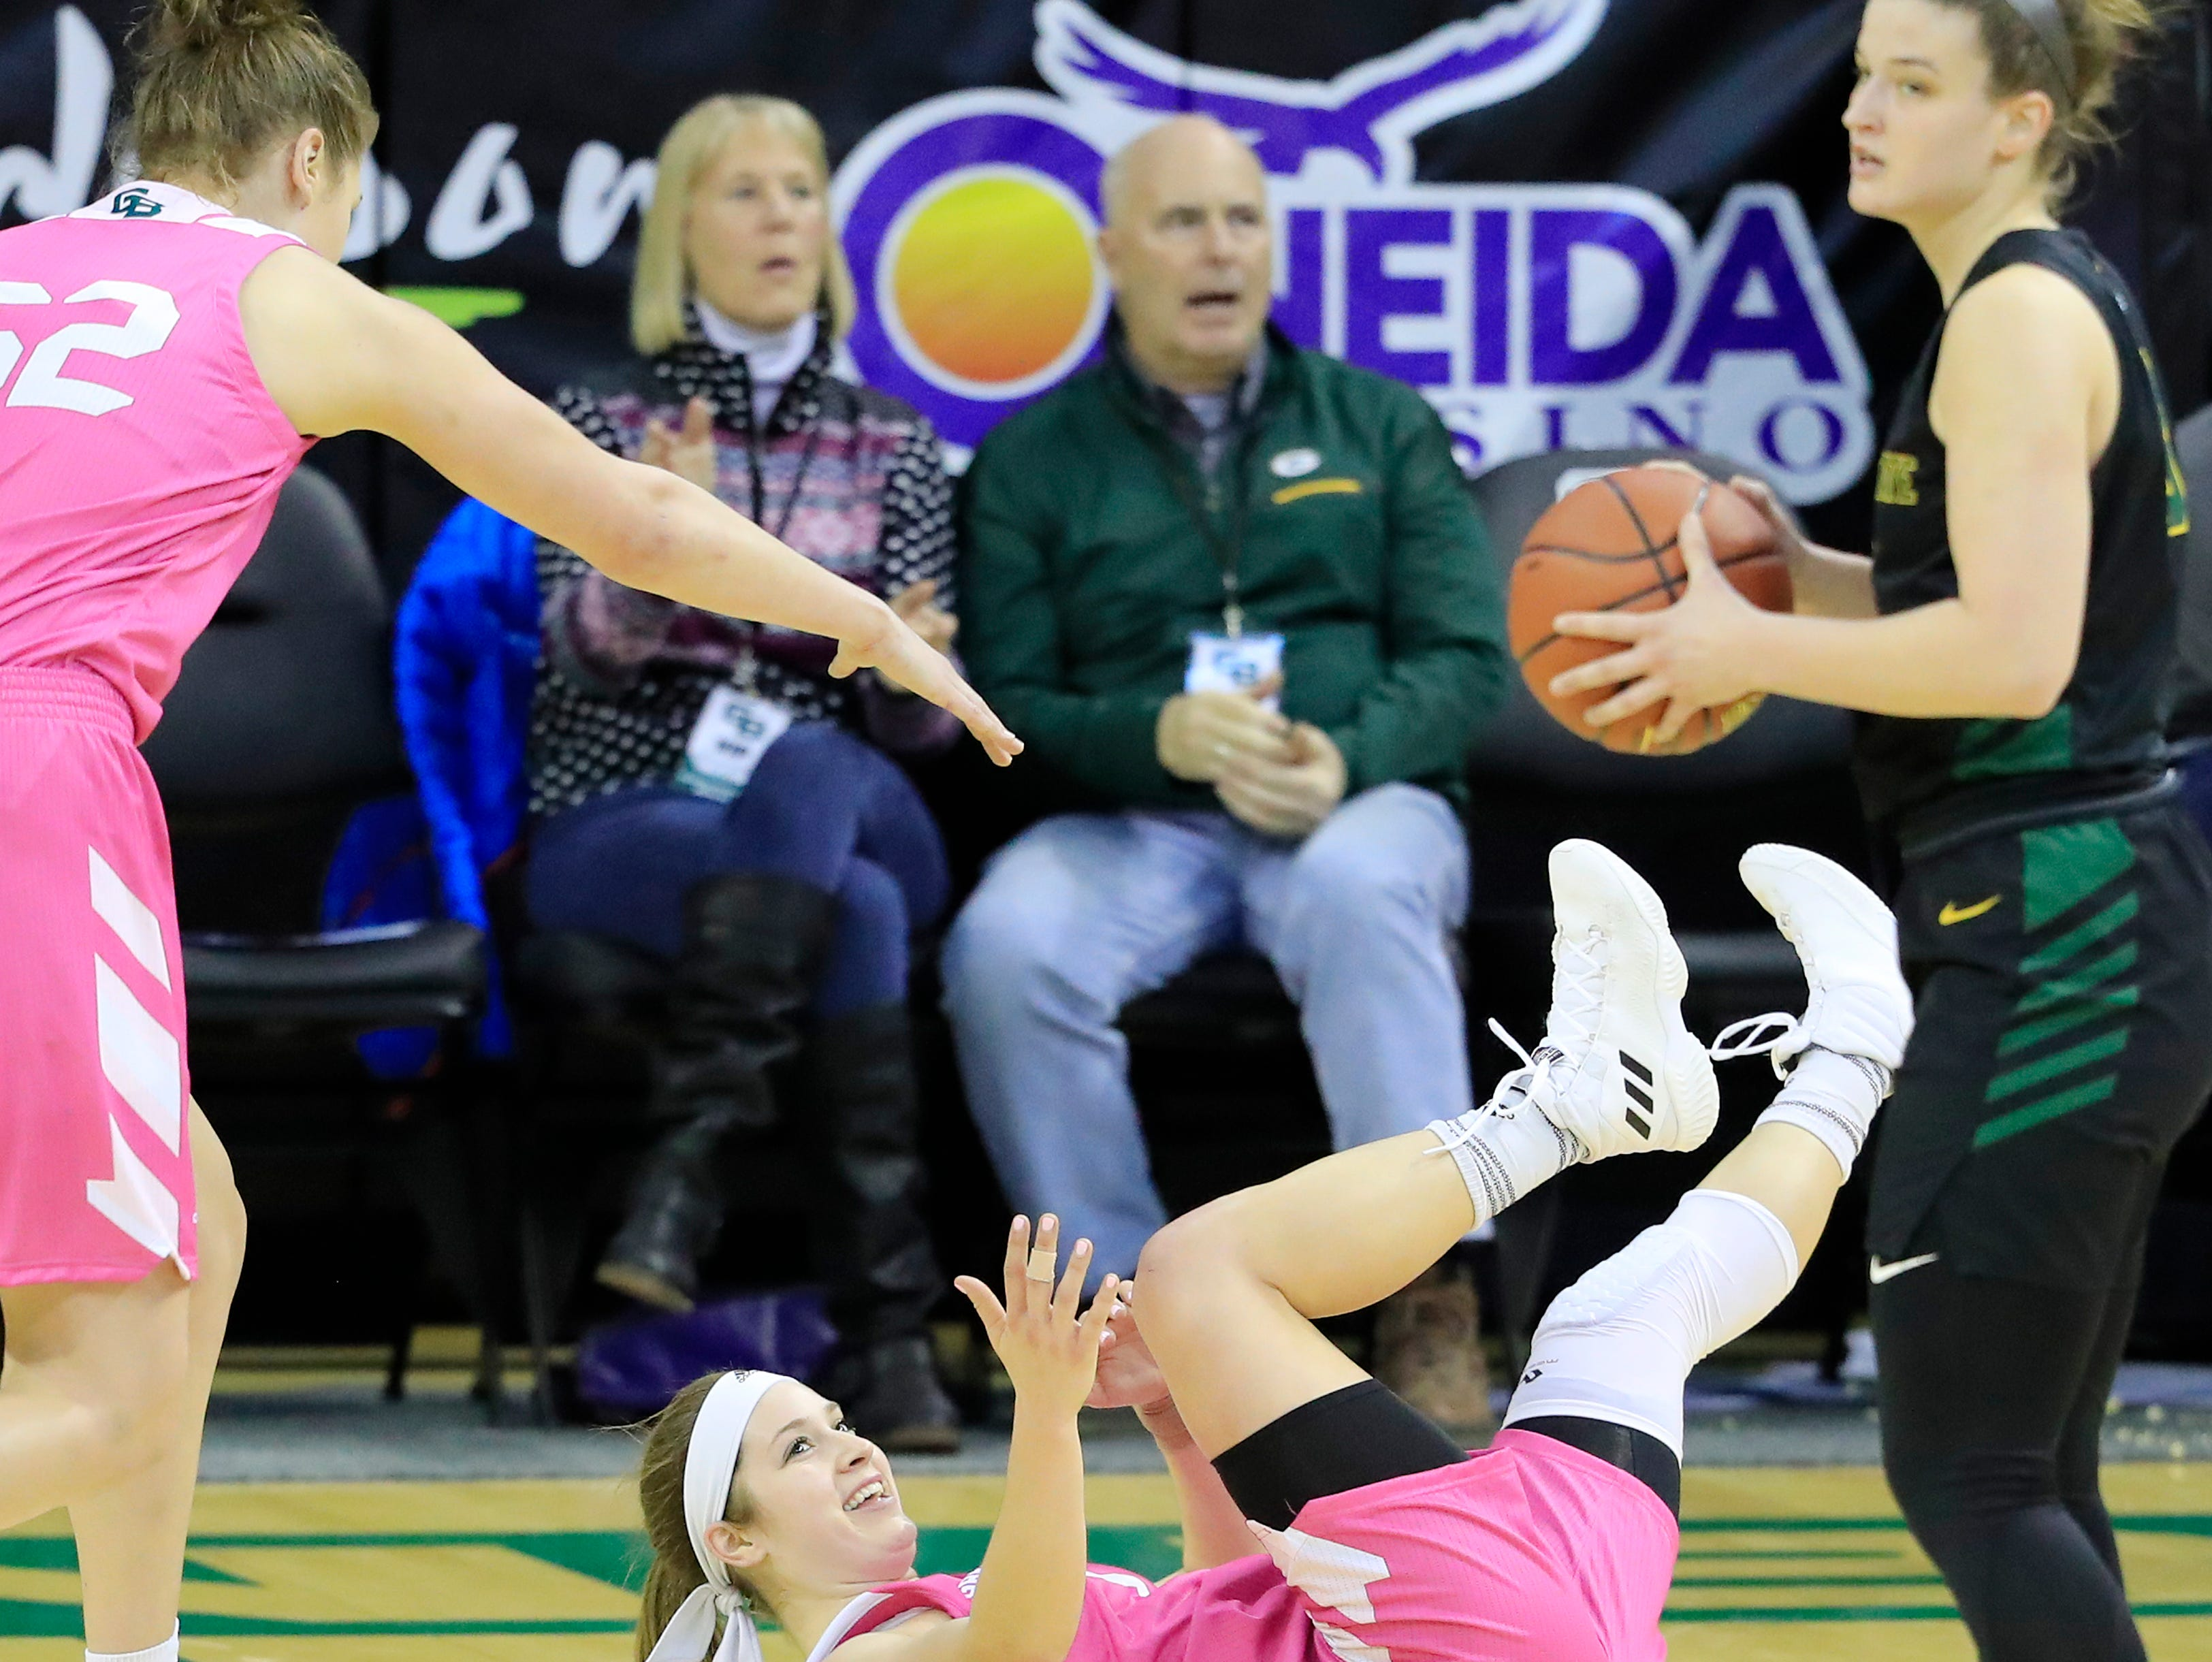 Green Bay Phoenix guard Laken James (5) draws a charge in the first half against the Wright State Raiders in a Horizon League women's basketball game at the Kress Center on Saturday, February 9, 2019 in Green Bay, Wis.